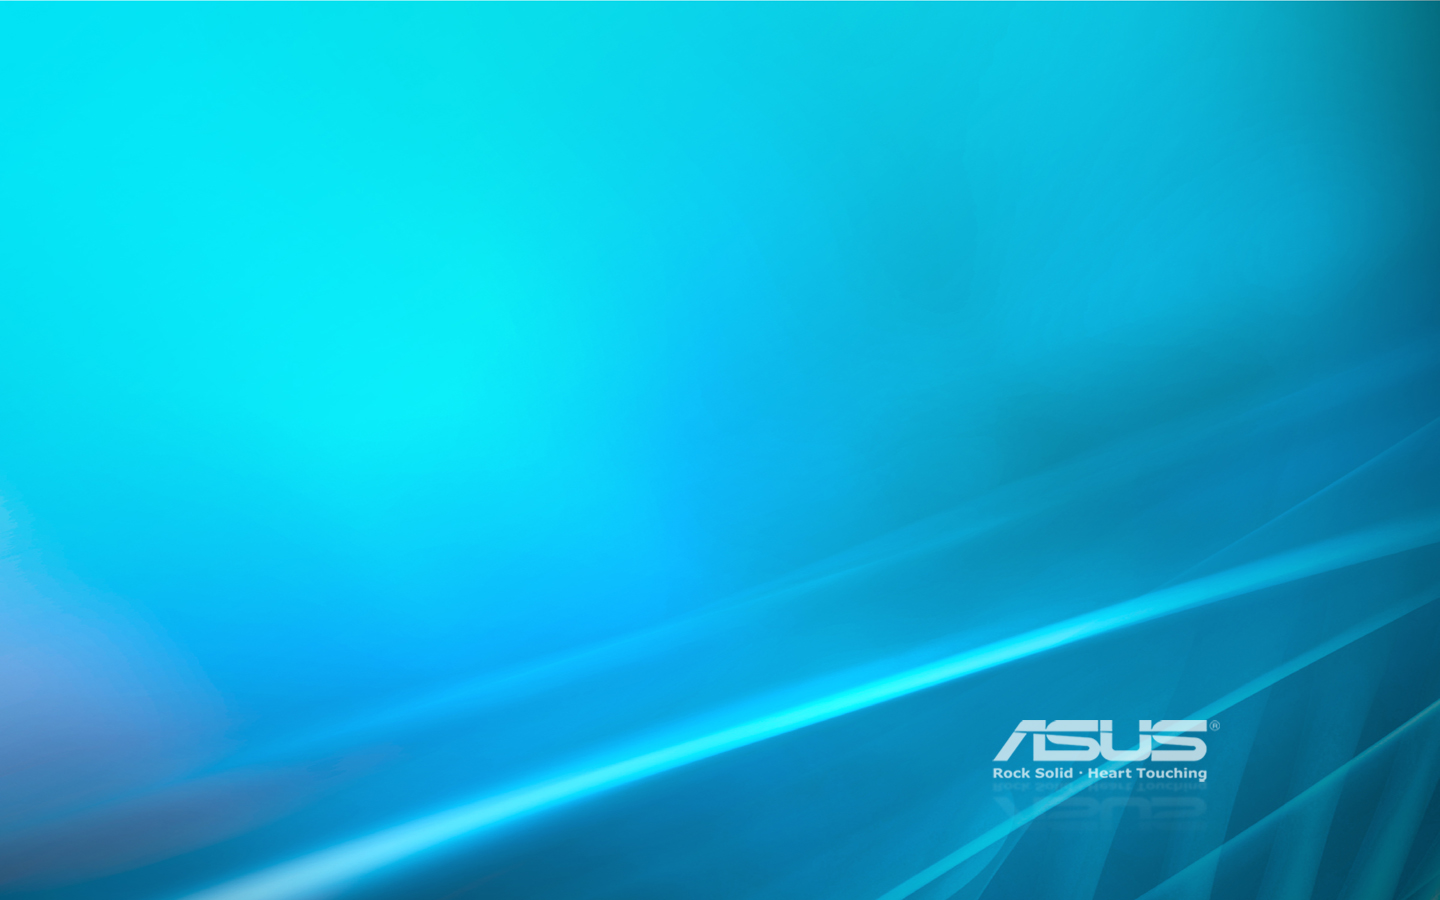 Asus Live Wallpaper: Live Wallpapers For Chromebook